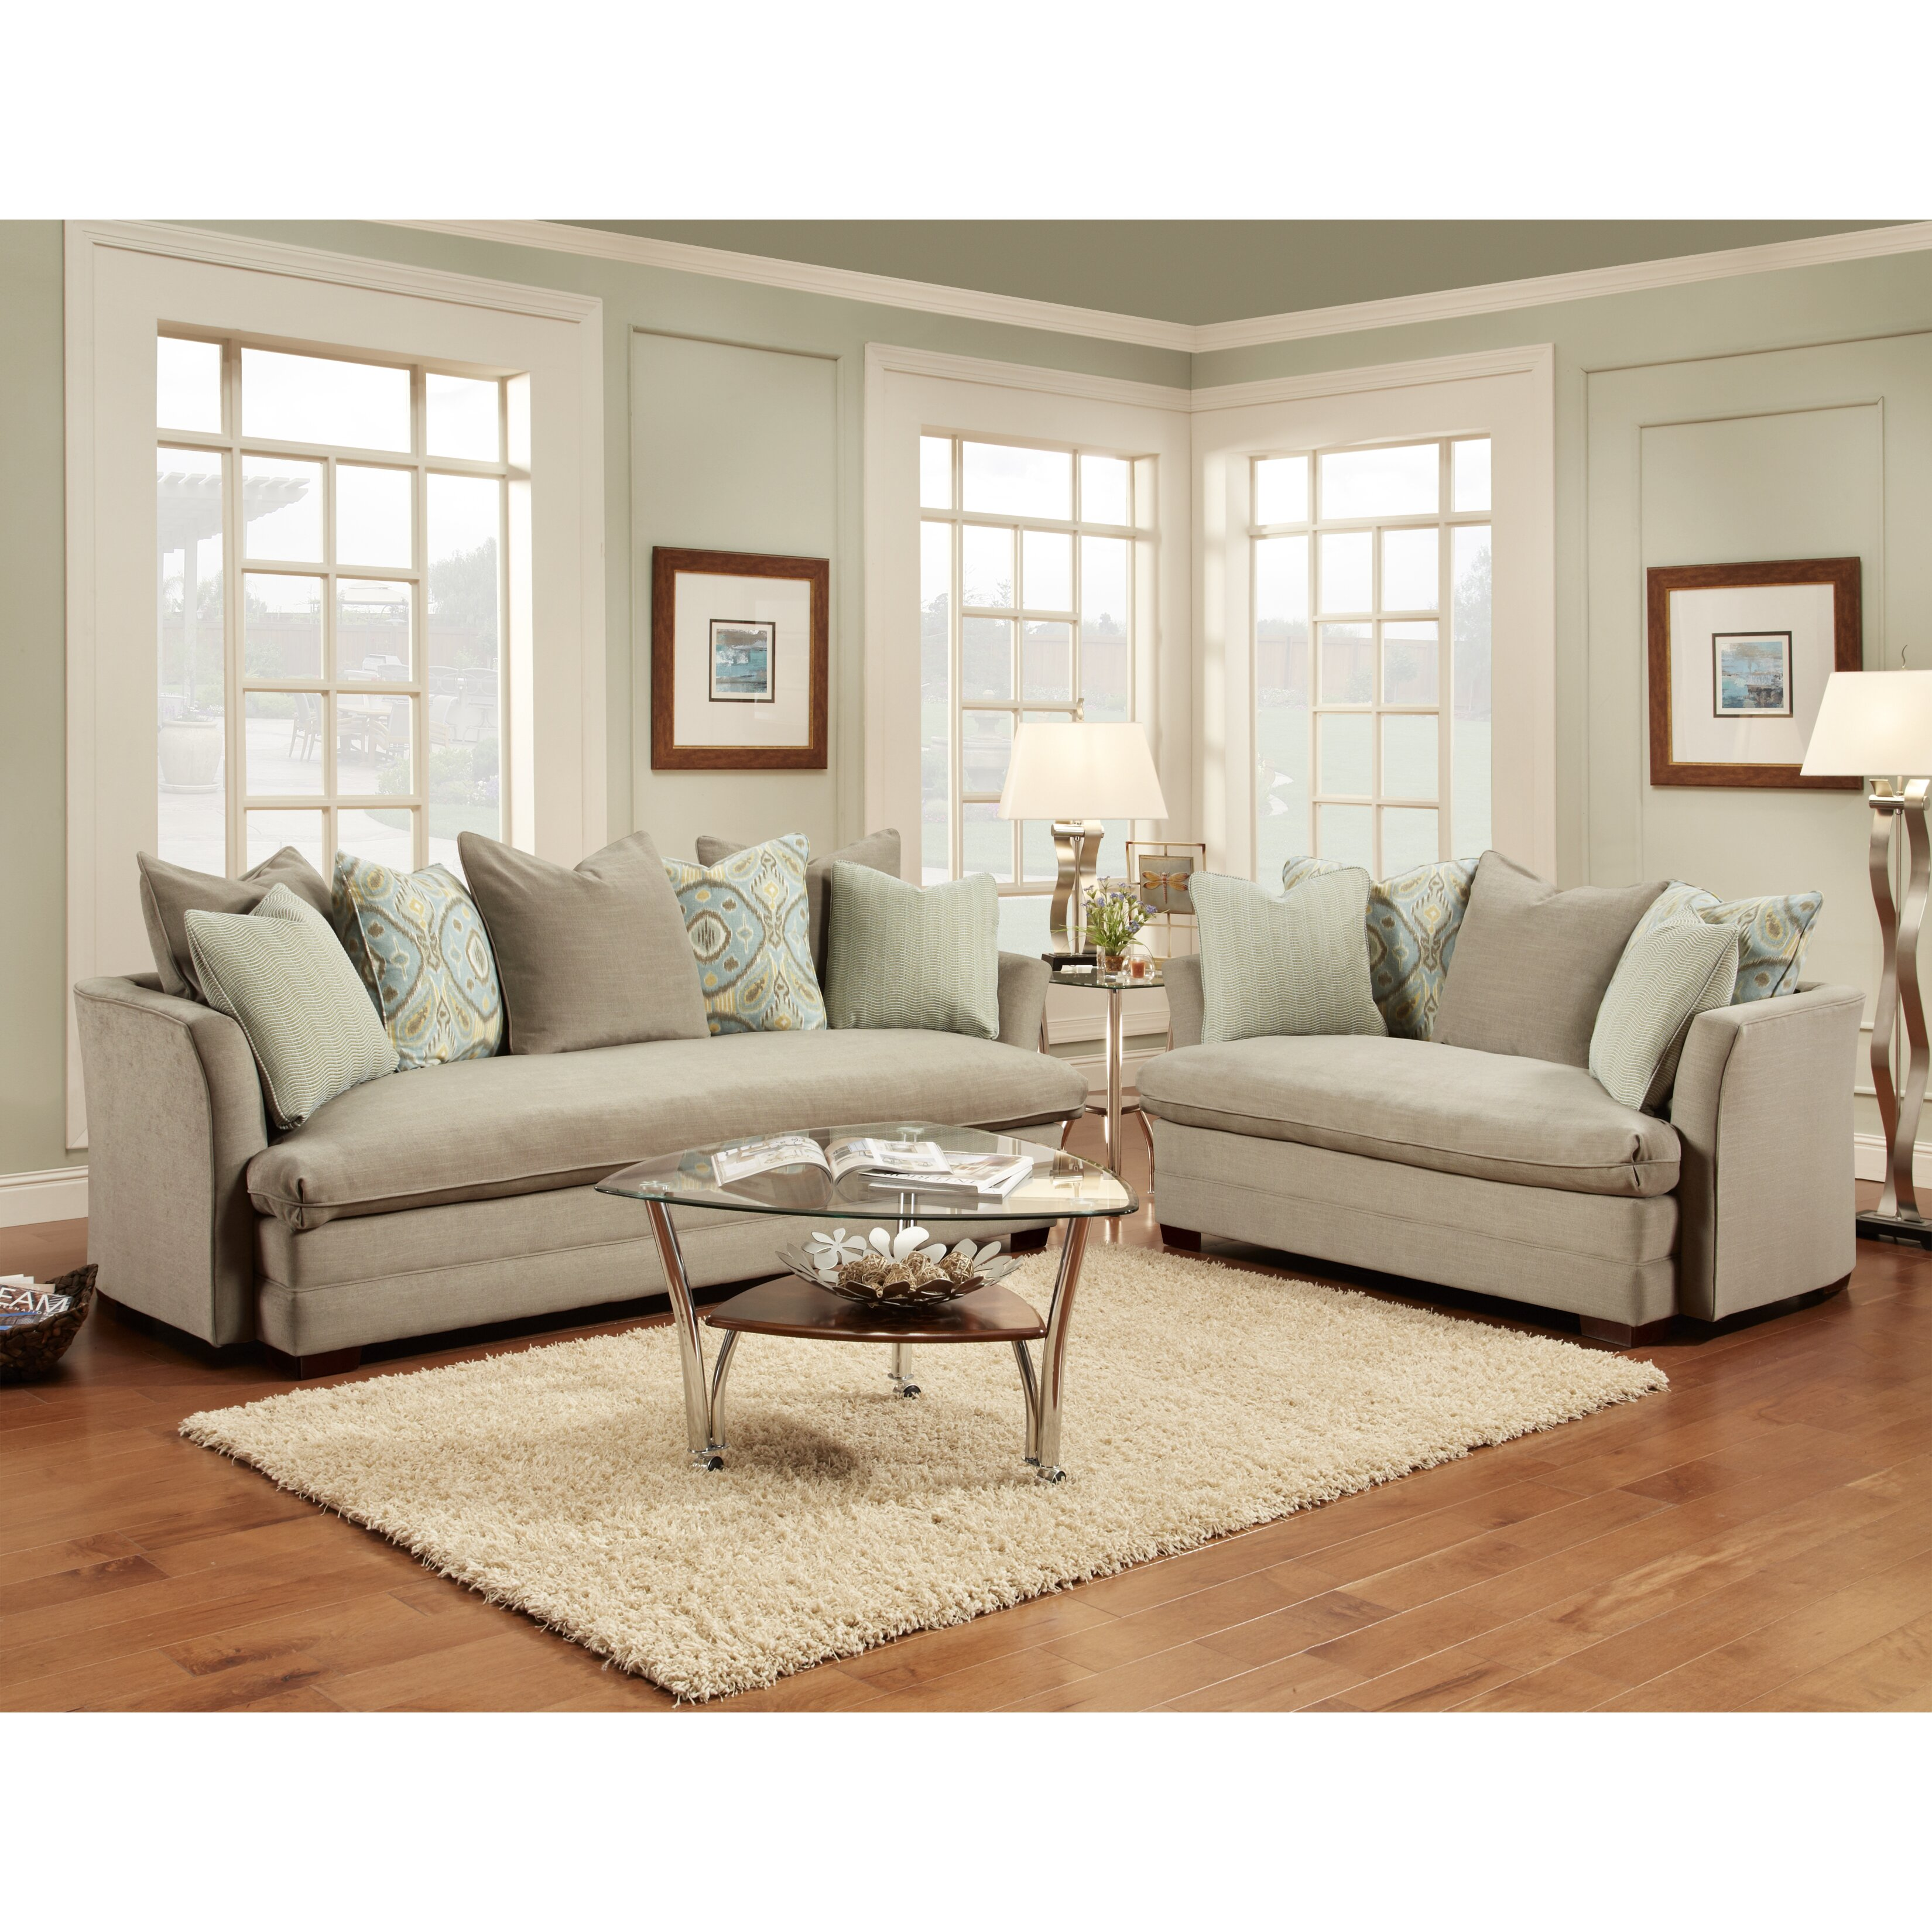 Wildon Home Laney Living Room Collection Reviews